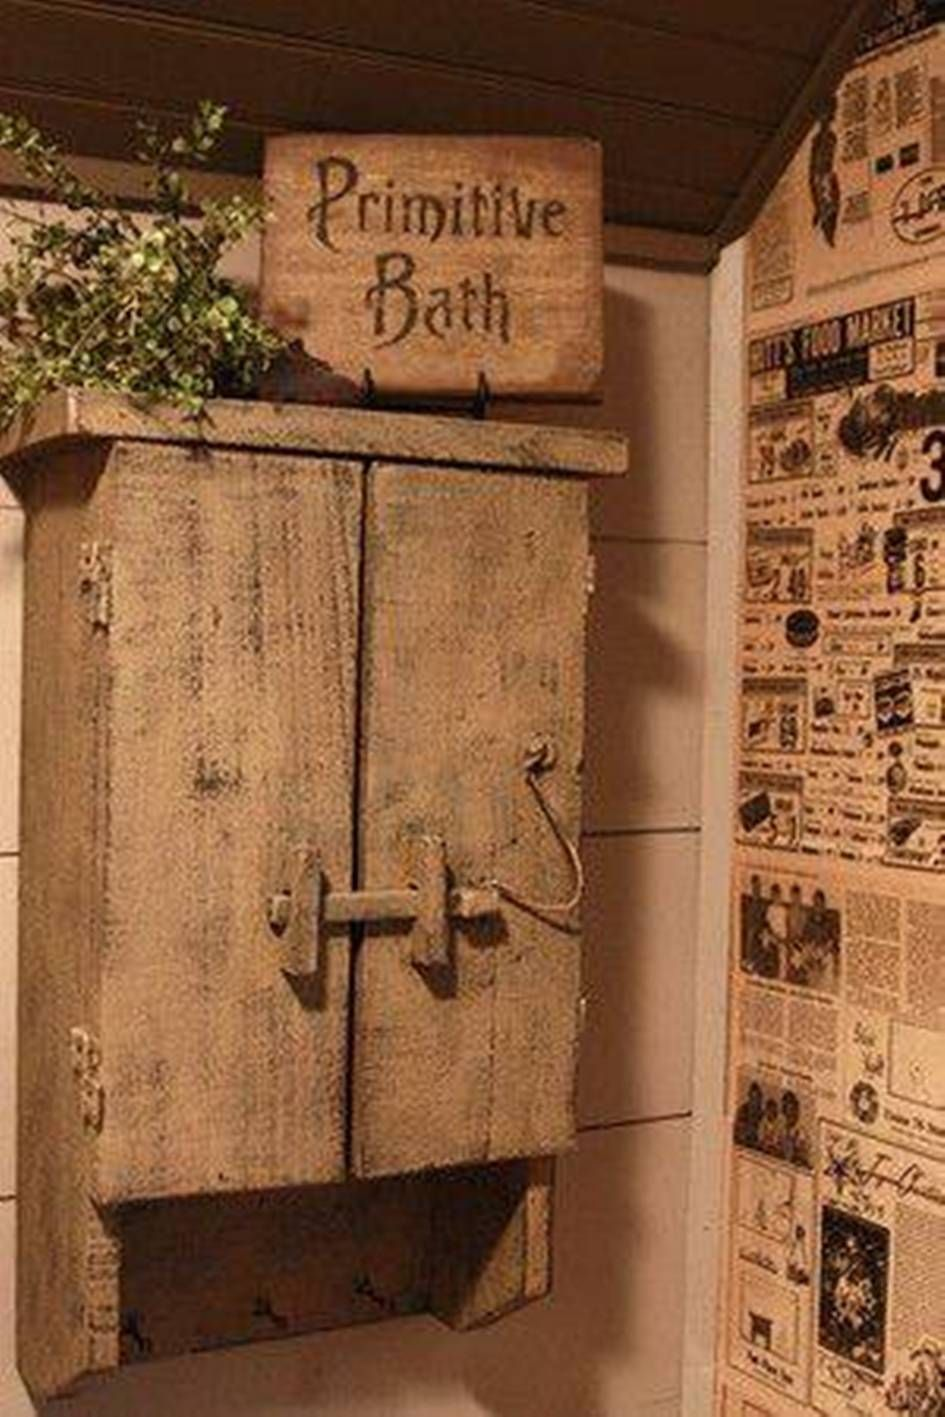 Primitive Bathroom Wall Cabinets That Are Medicine Or Were Terms Used To Reference A Plain White